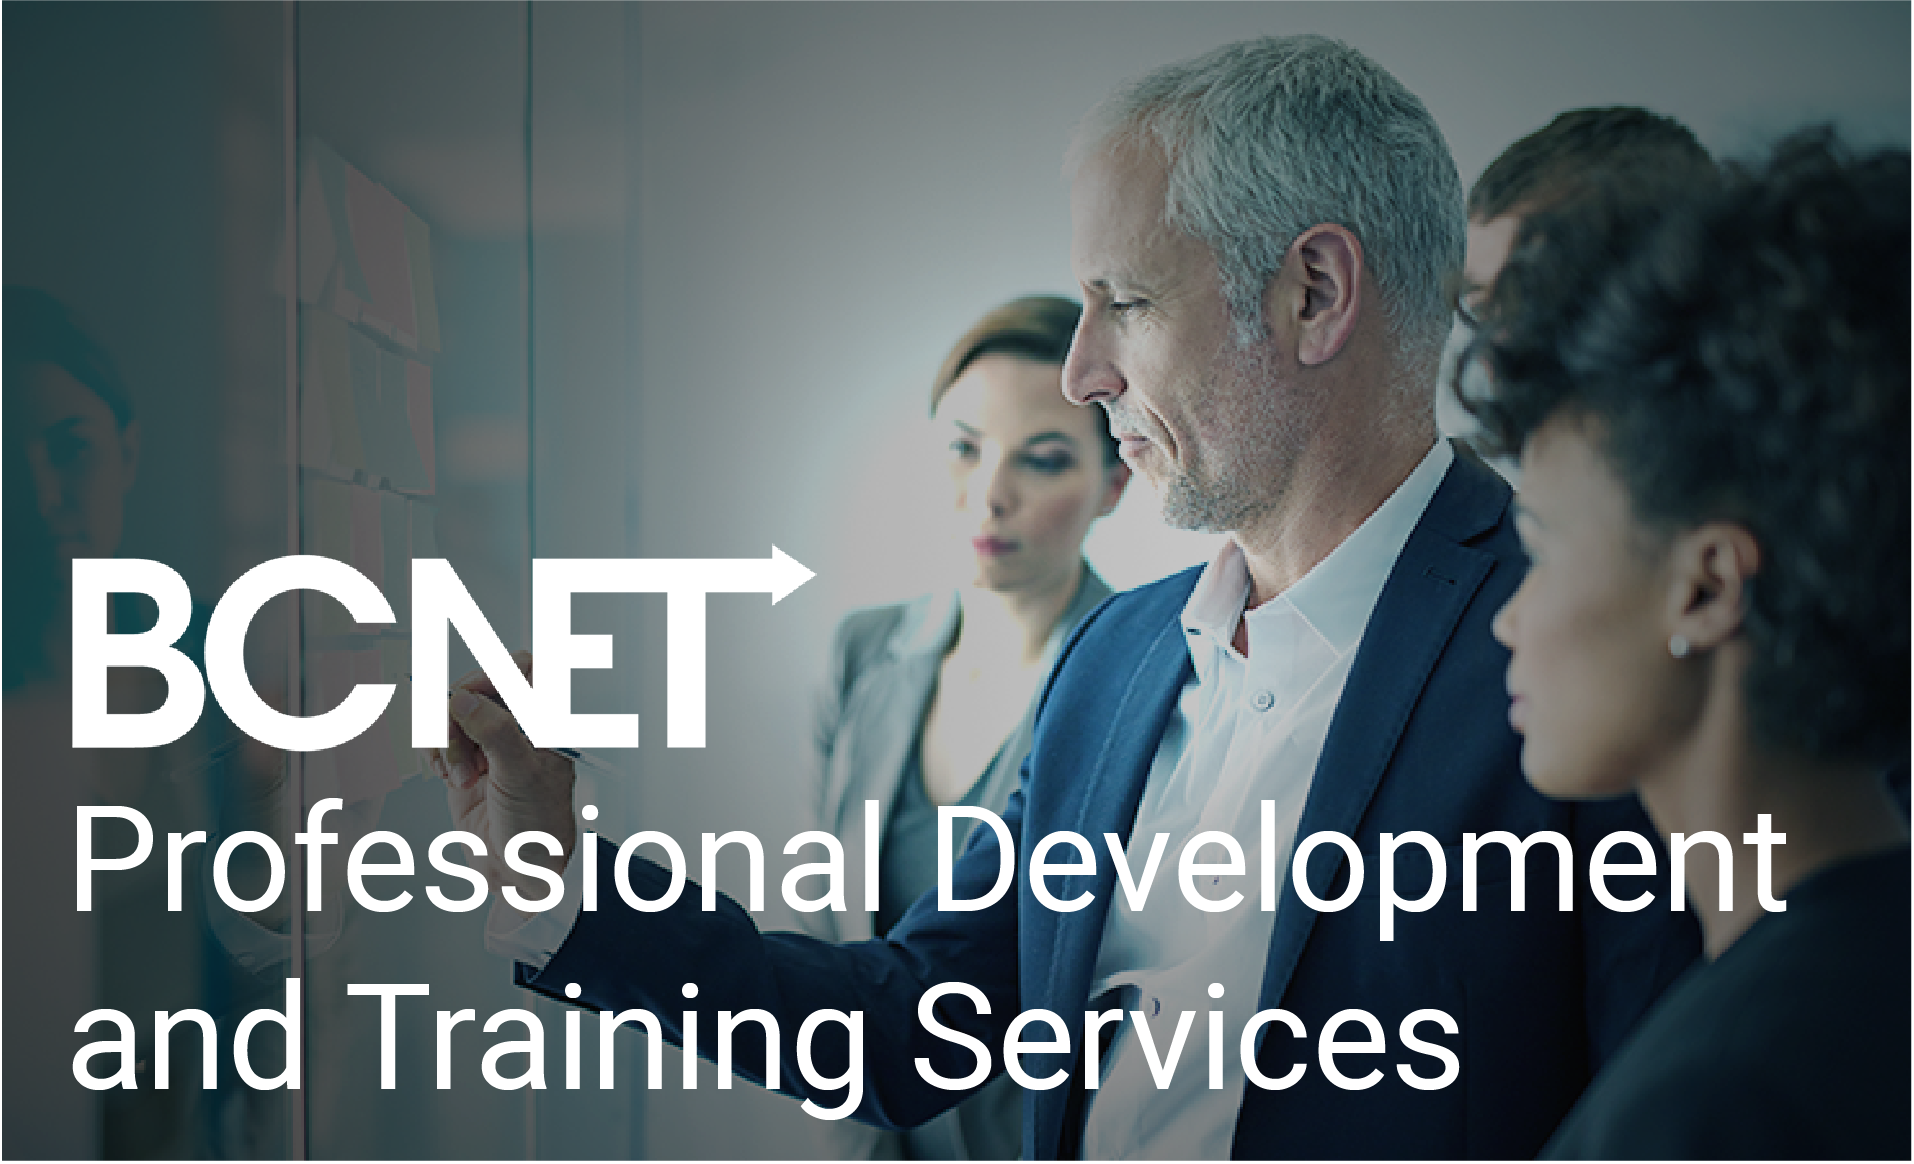 BCNET Professional Development and Training